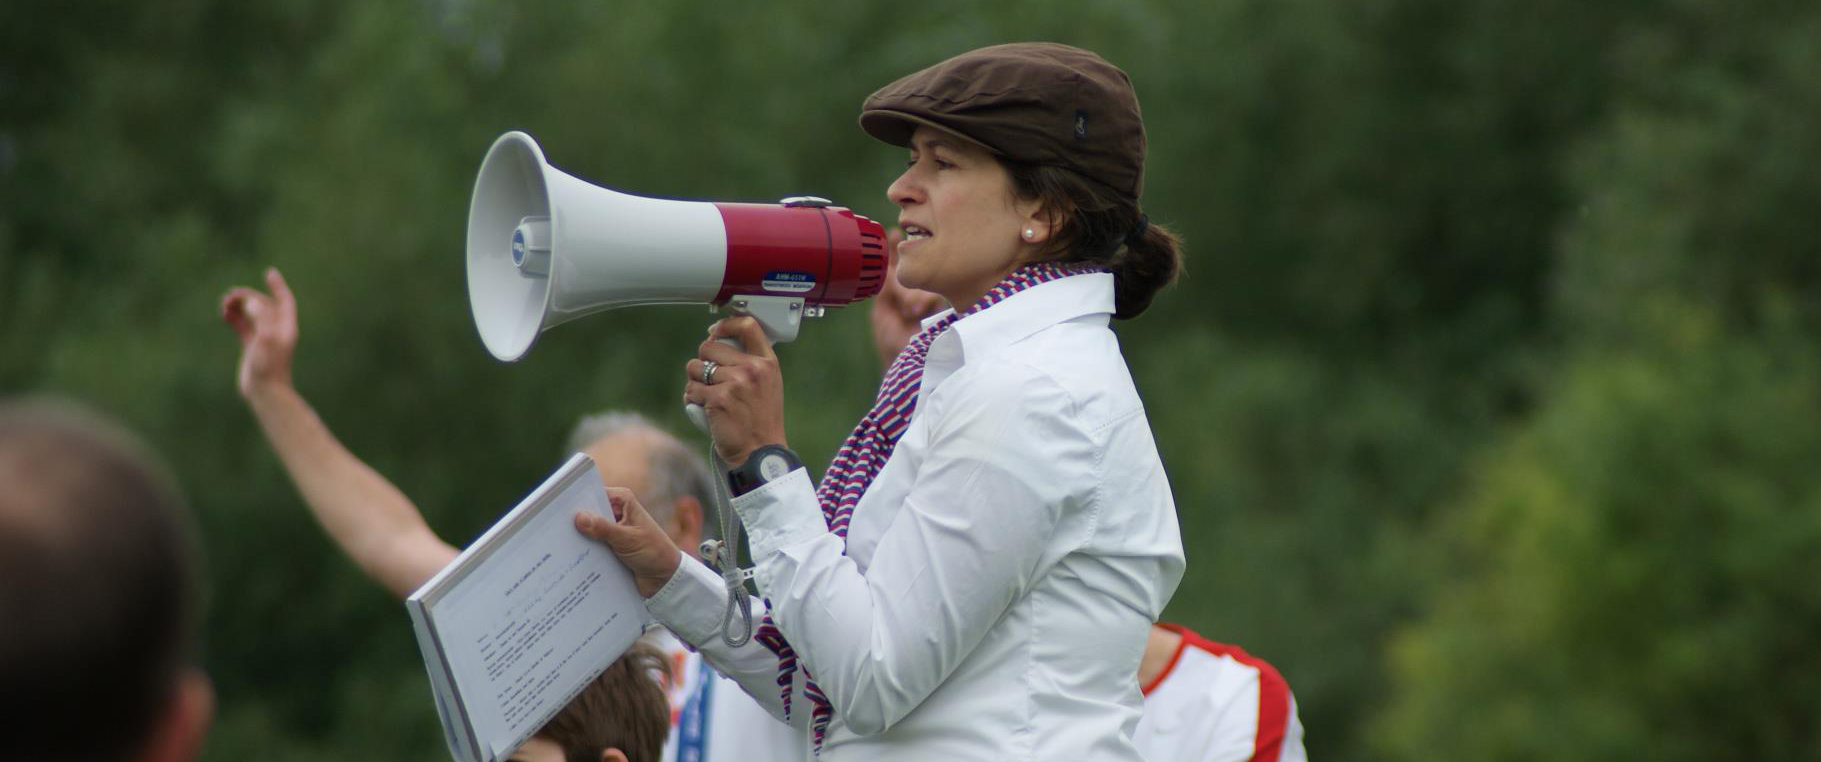 Teresa takes the run brief with a megaphone